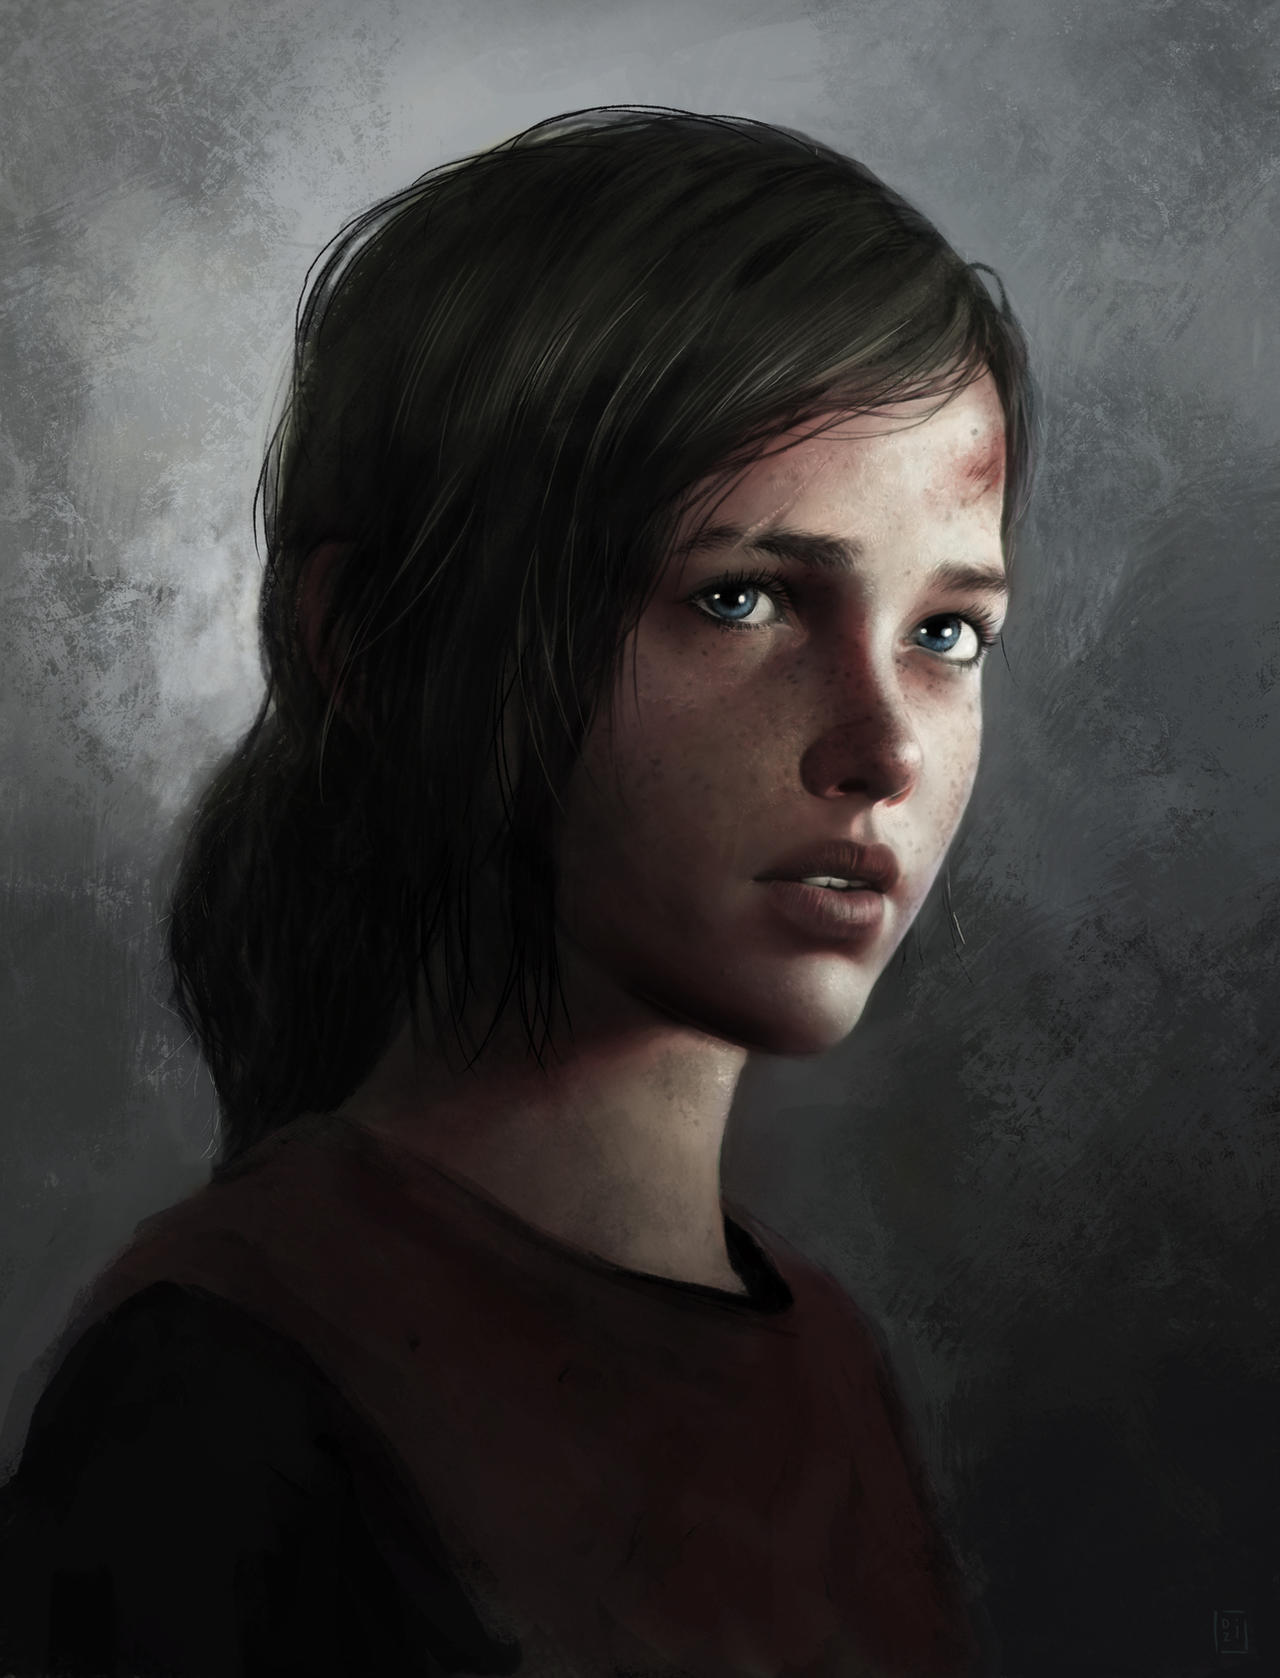 Ellie from The Last of Us by DziKawa on DeviantArt